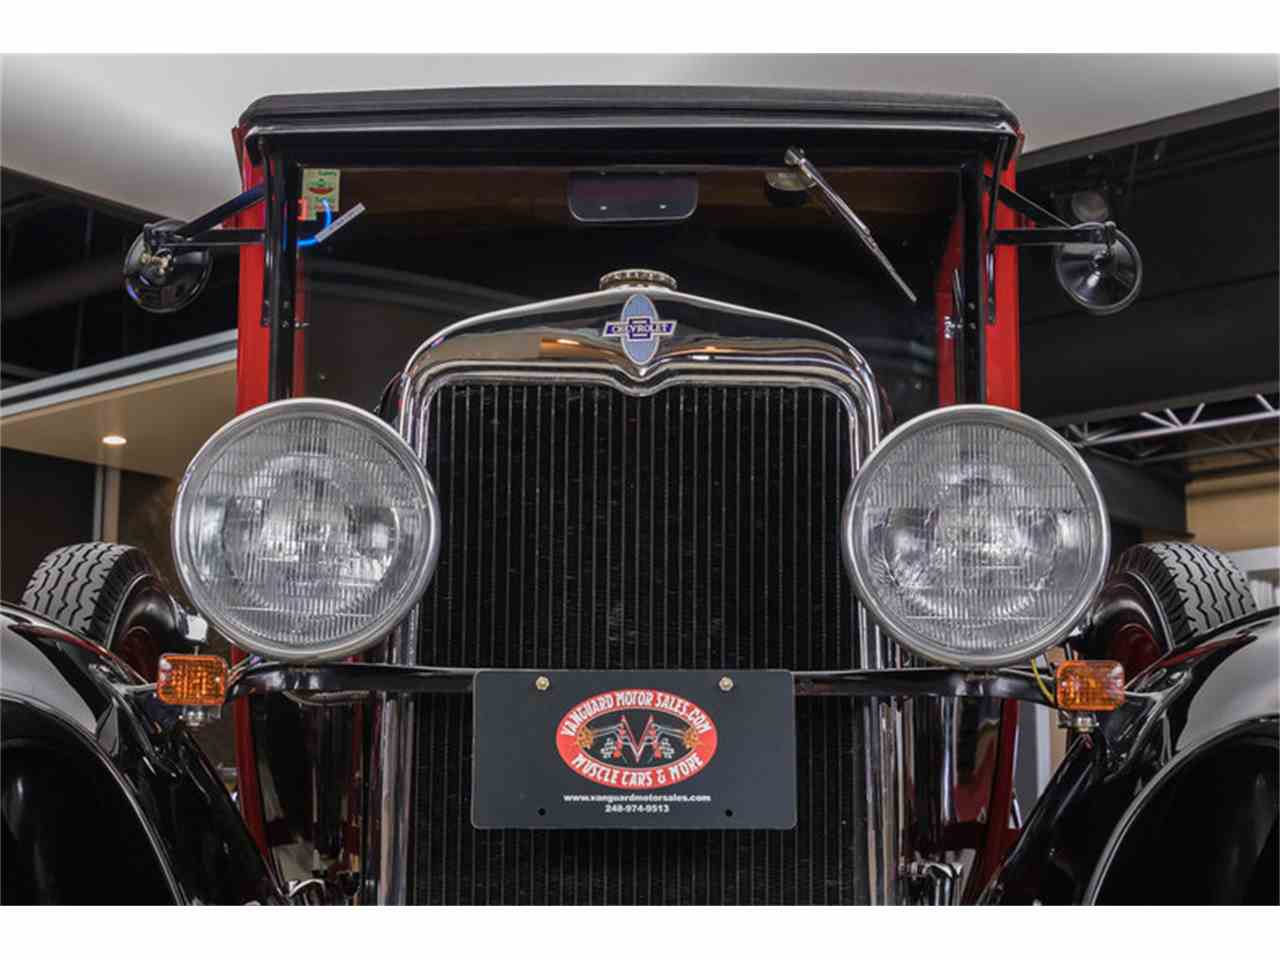 Large Picture of Classic '30 Chevrolet Huckster Truck - L5ME